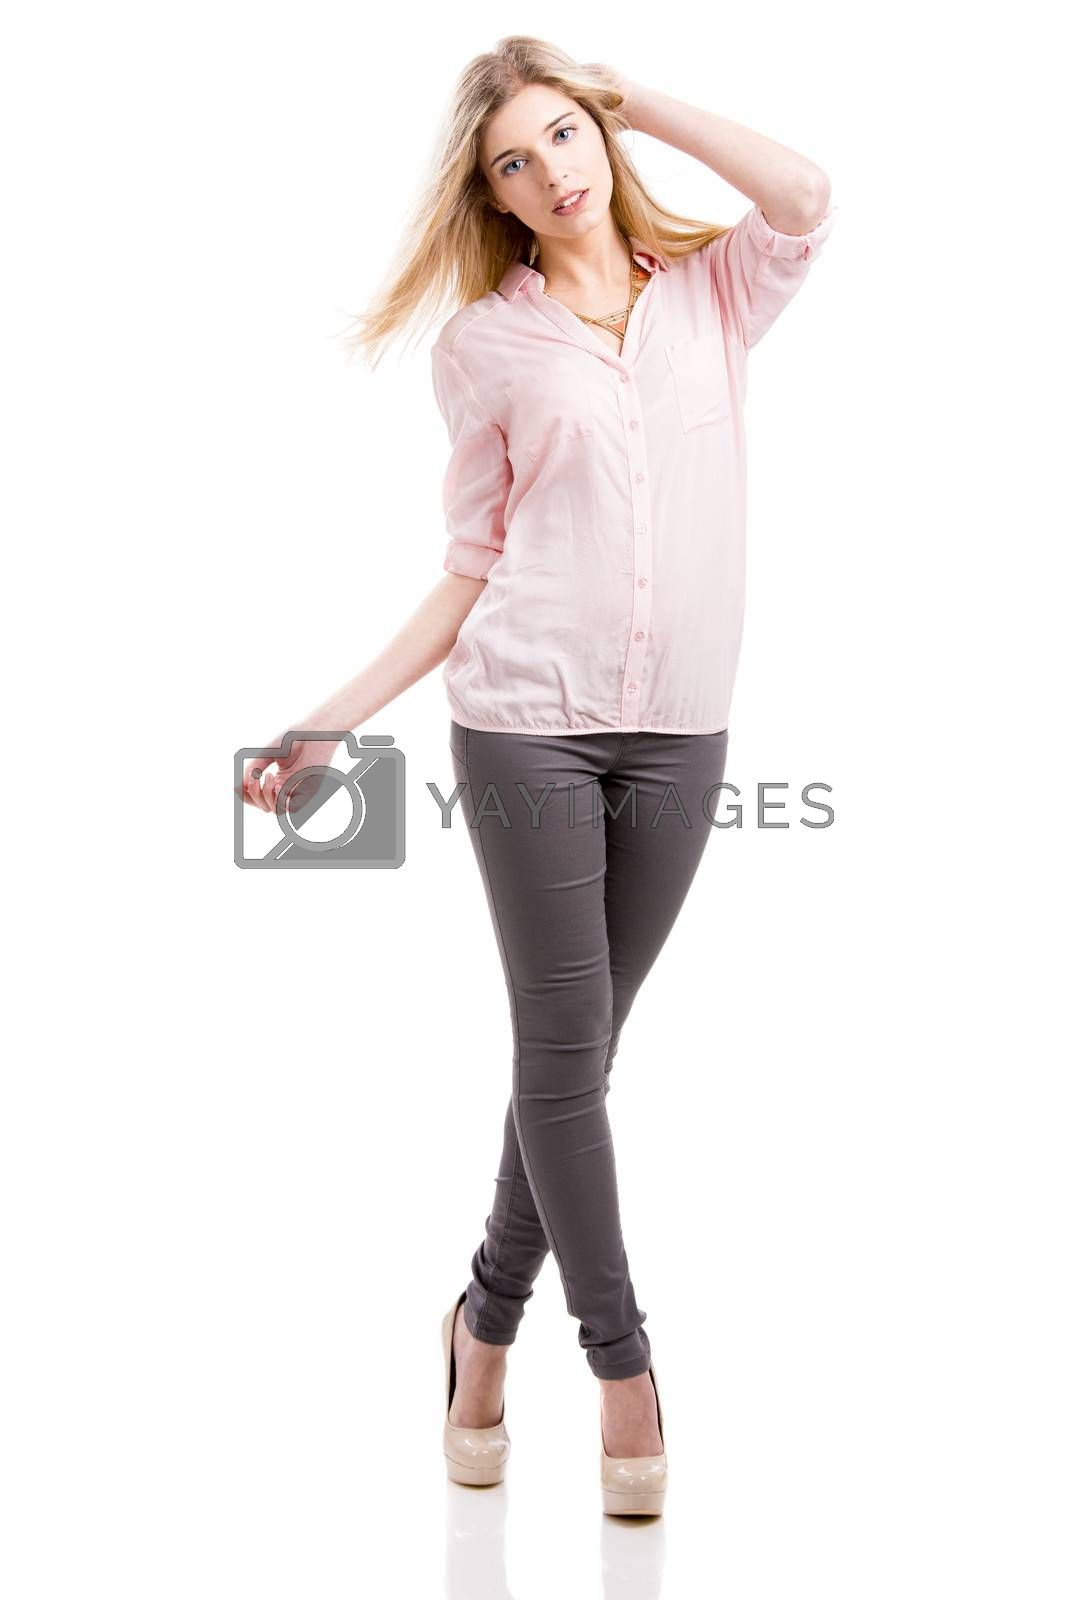 Beautiful and attractive fashion woman smiling and posing, isolated over white background